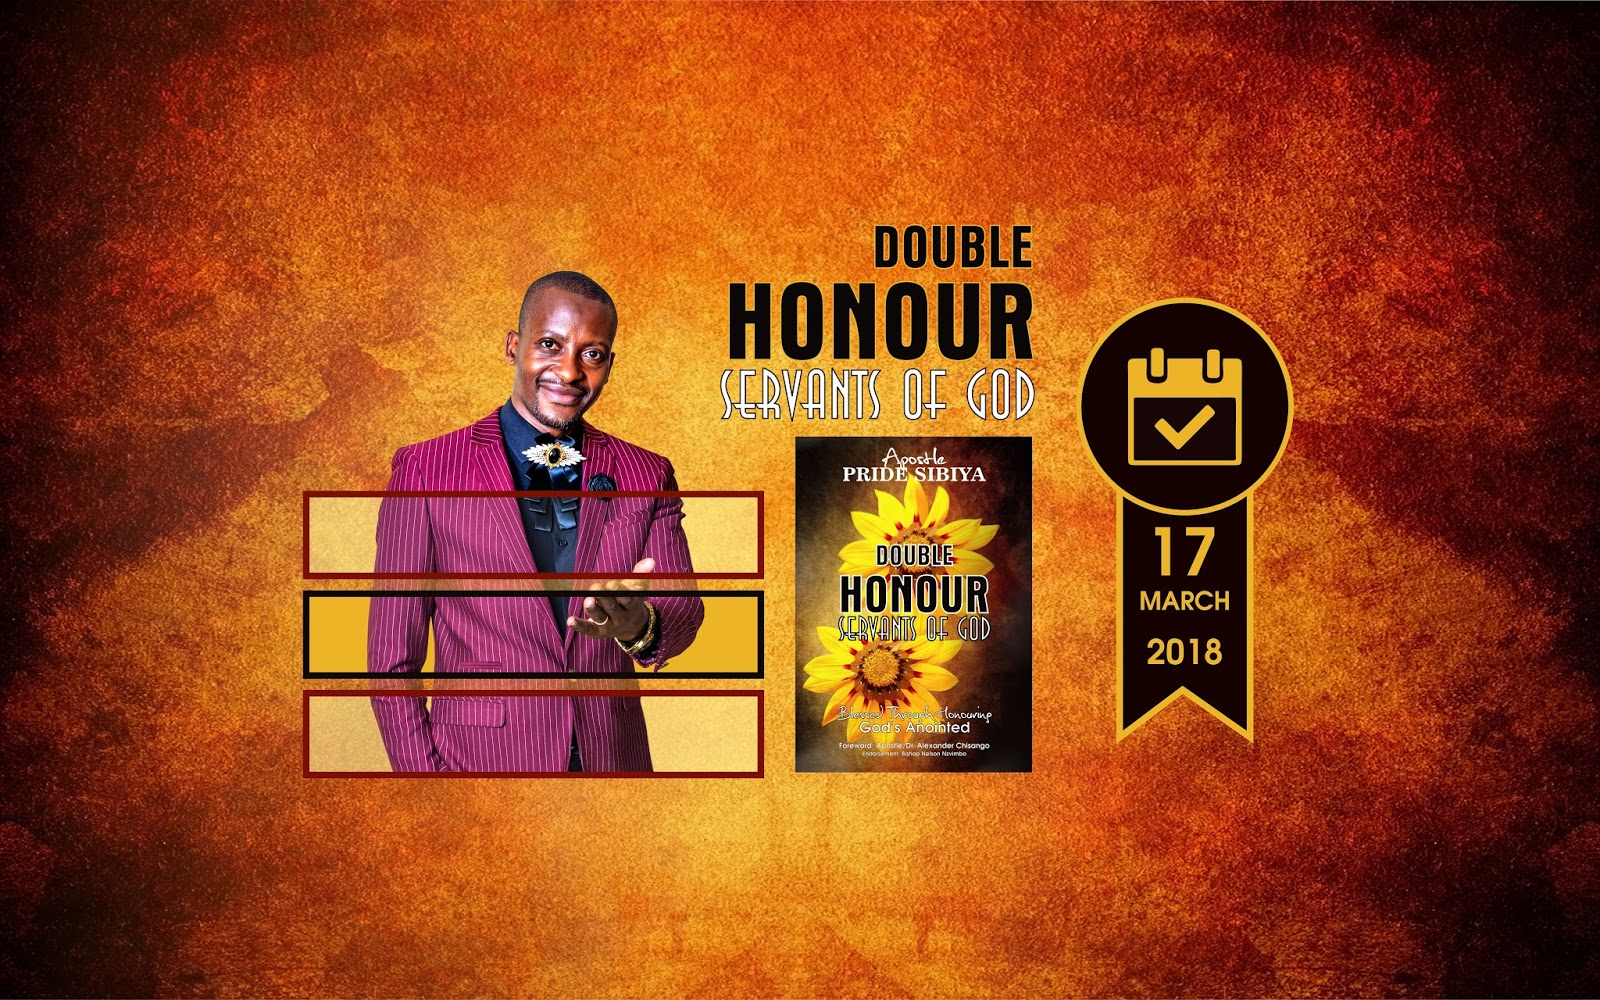 Double Honour Servants of God By Apostle P. Sibiya